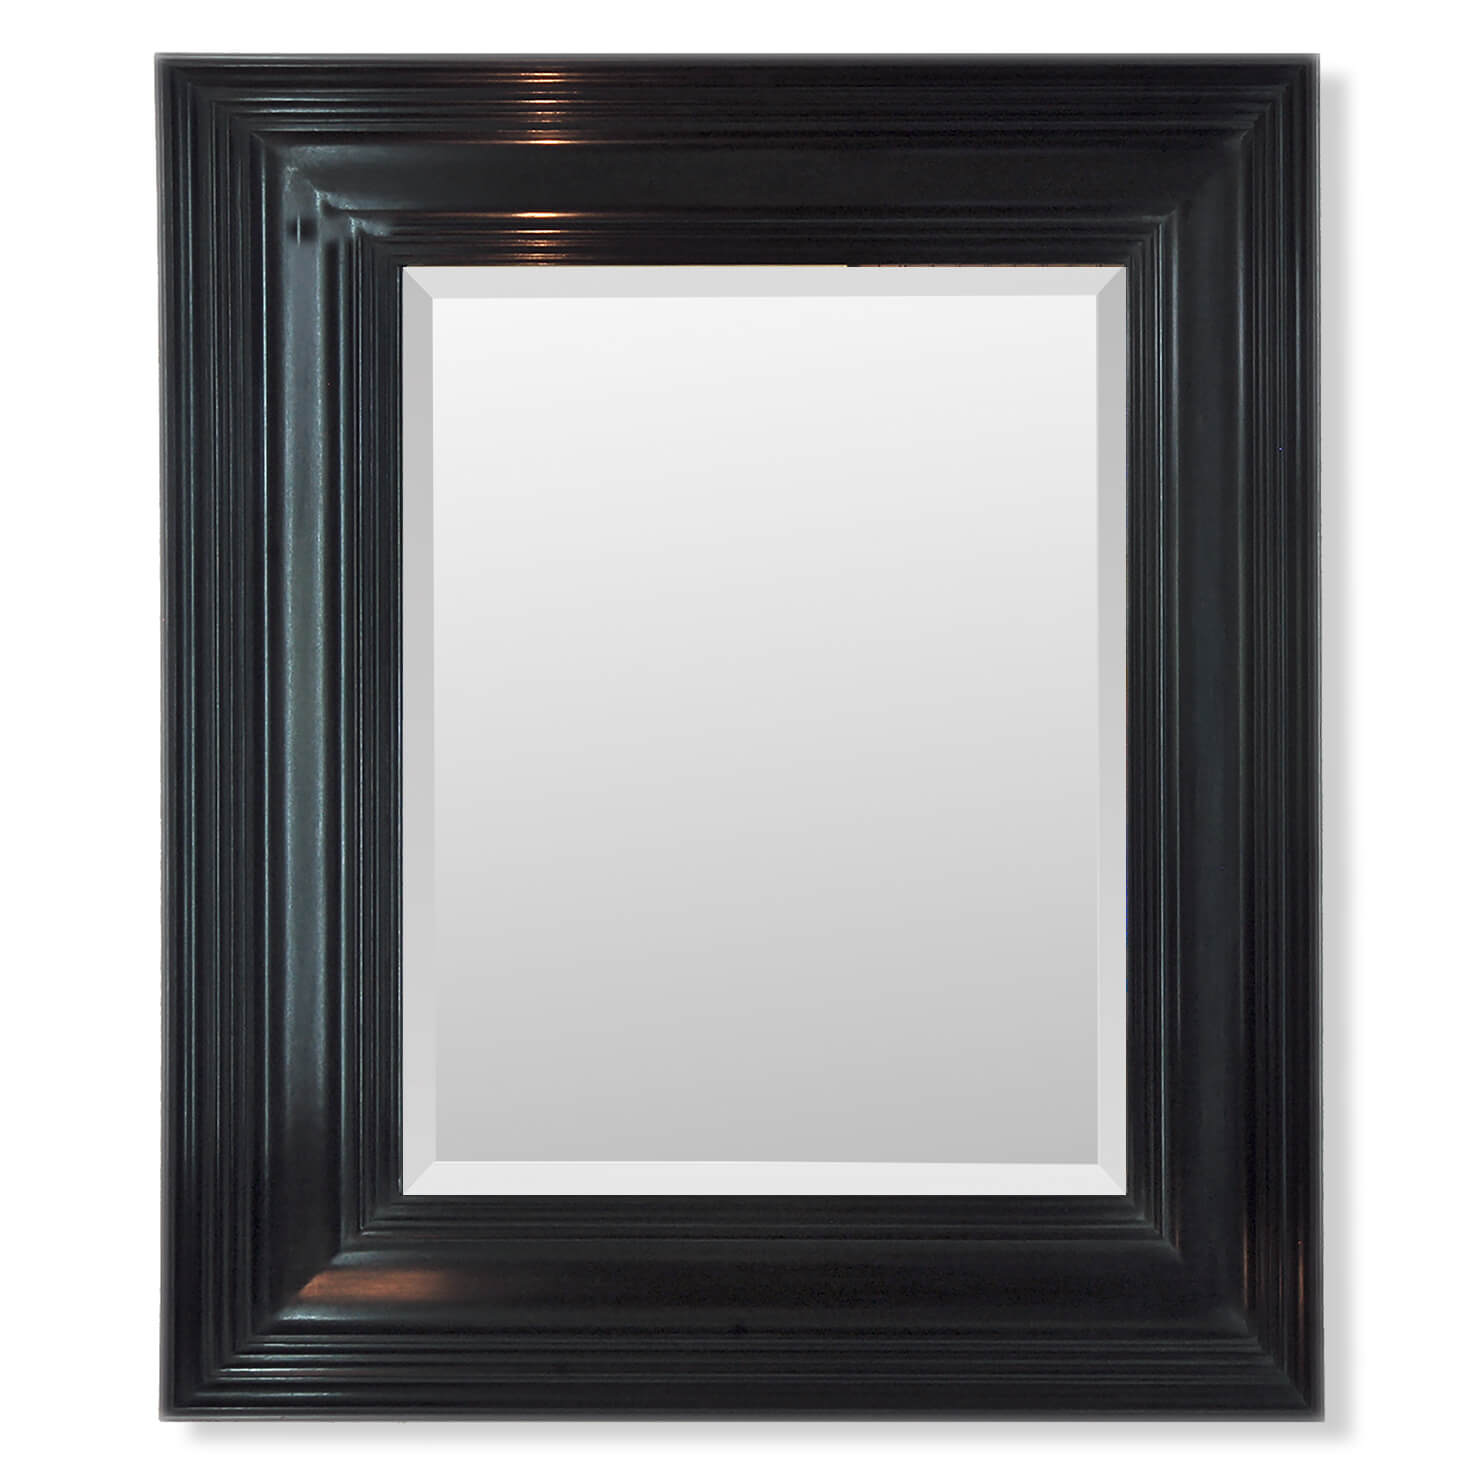 The Firle Traditional Mirror